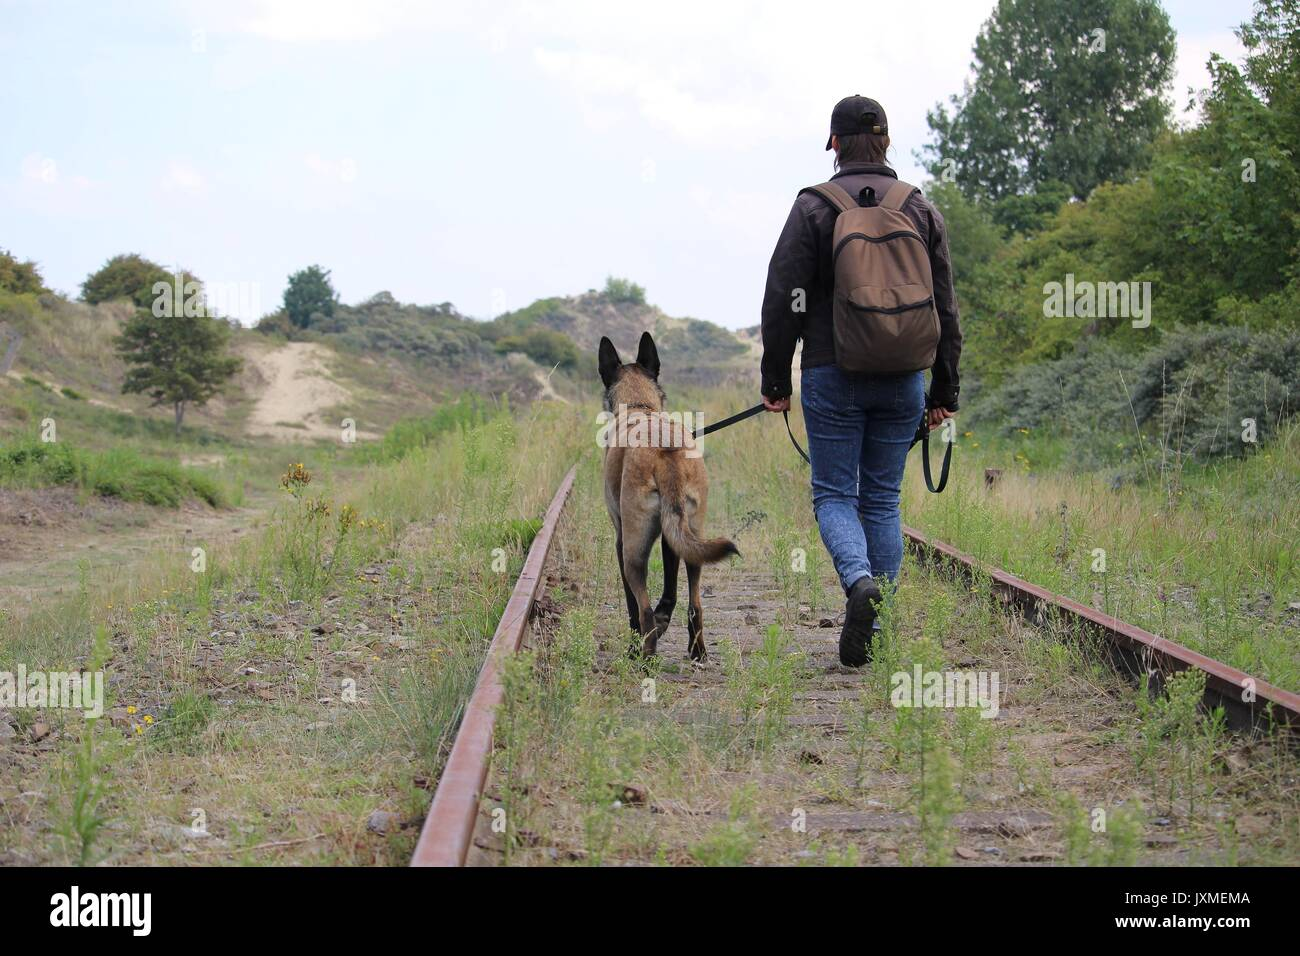 A master and his Malinois Belgian shepherd who walks along the rails - Stock Image